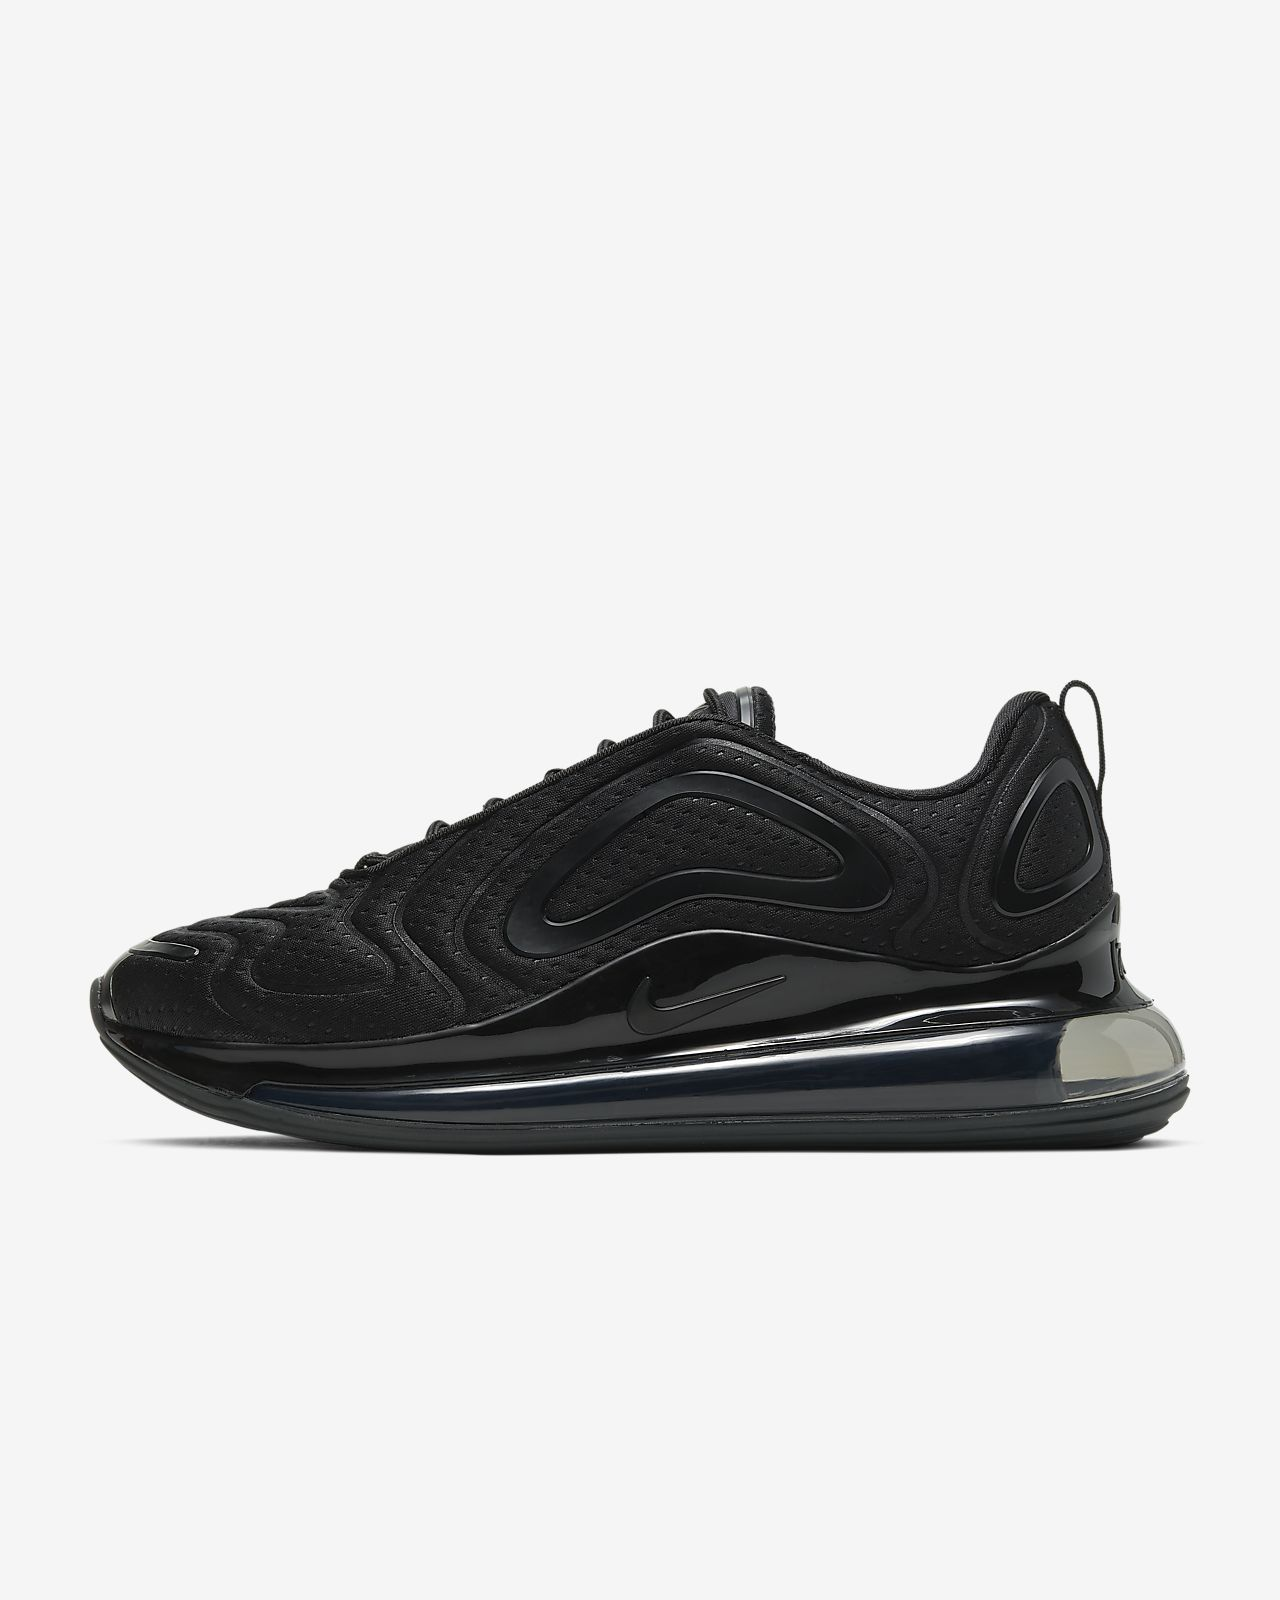 NIKE Air Max 720 € 95 Low Sneakers | Graffitishop